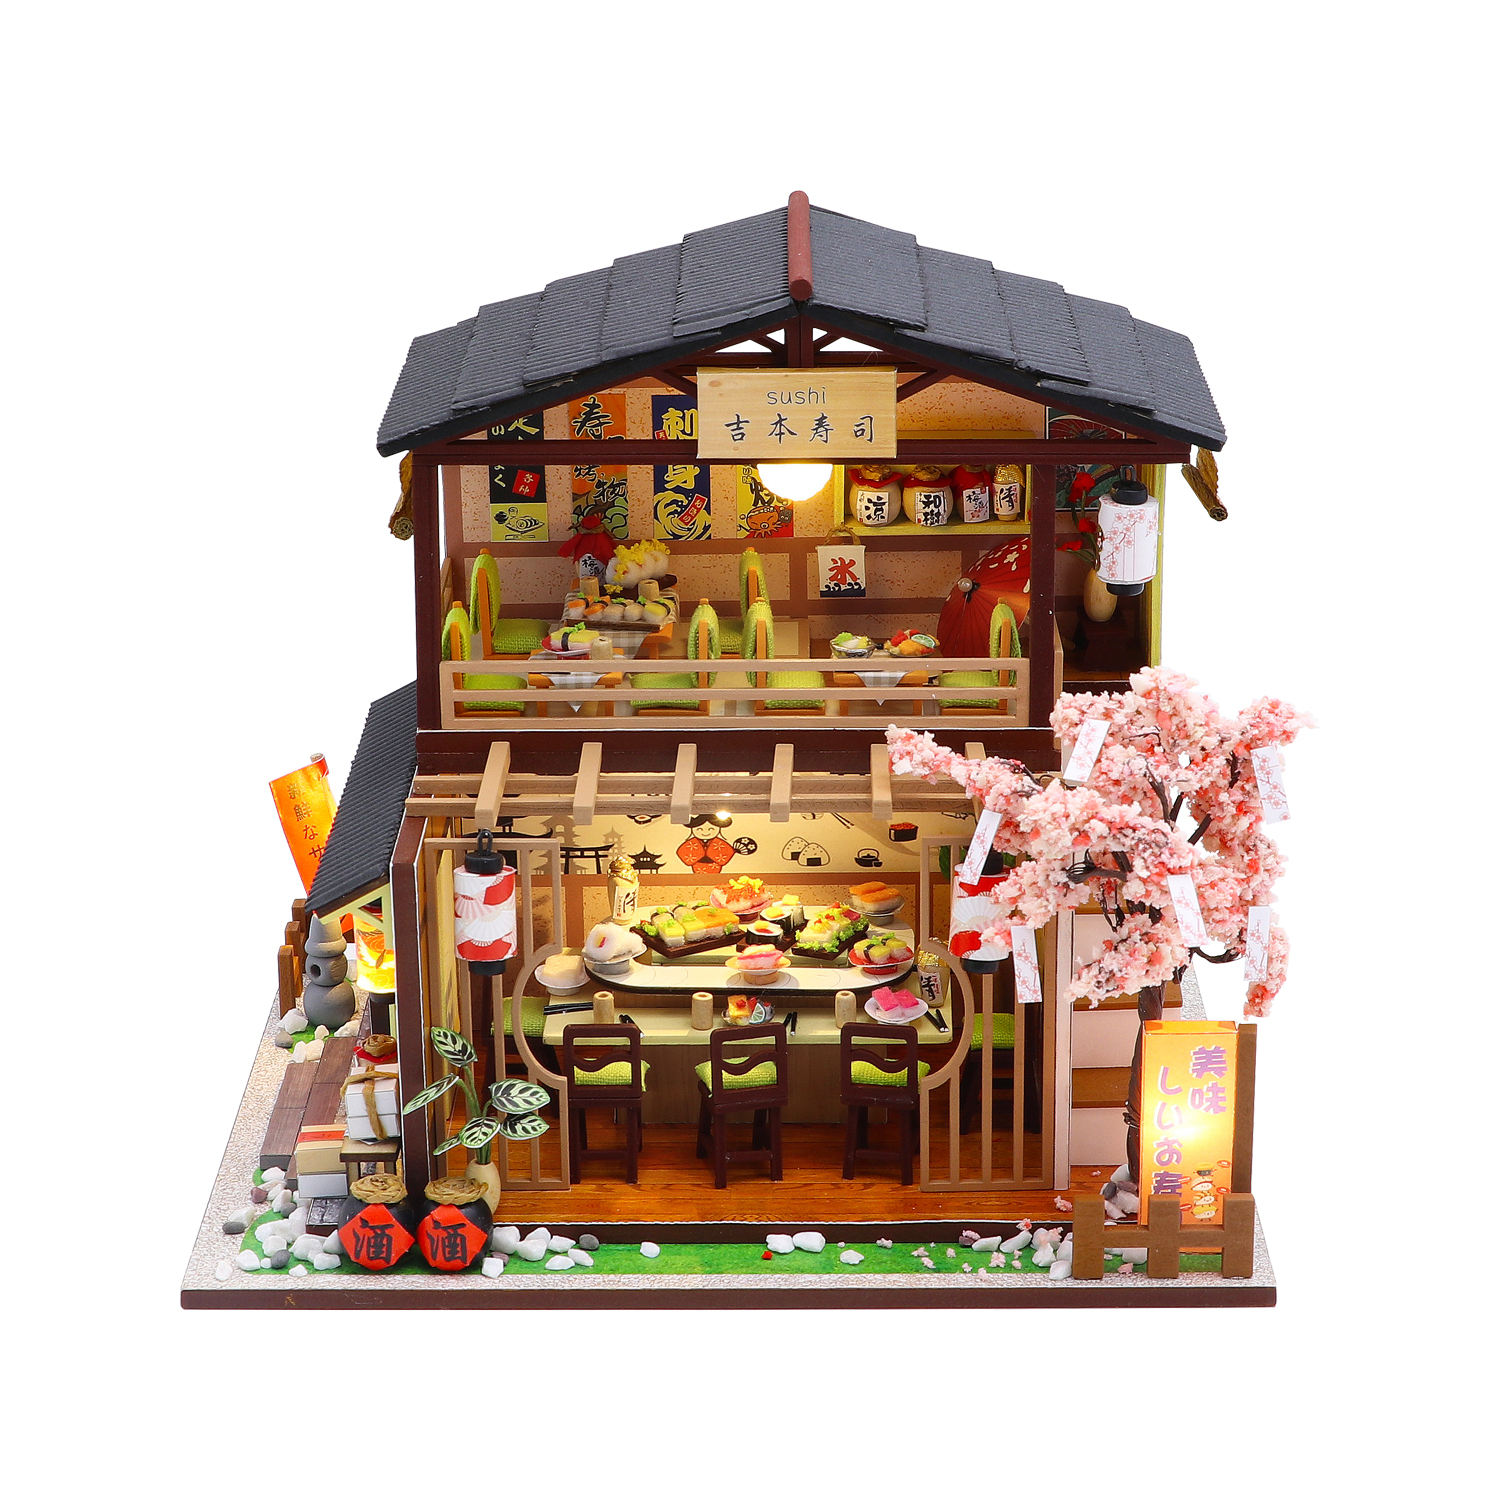 ProCircle lifestyle Eco friendly diy toy furniture set miniature wooden toy doll house furniture toys